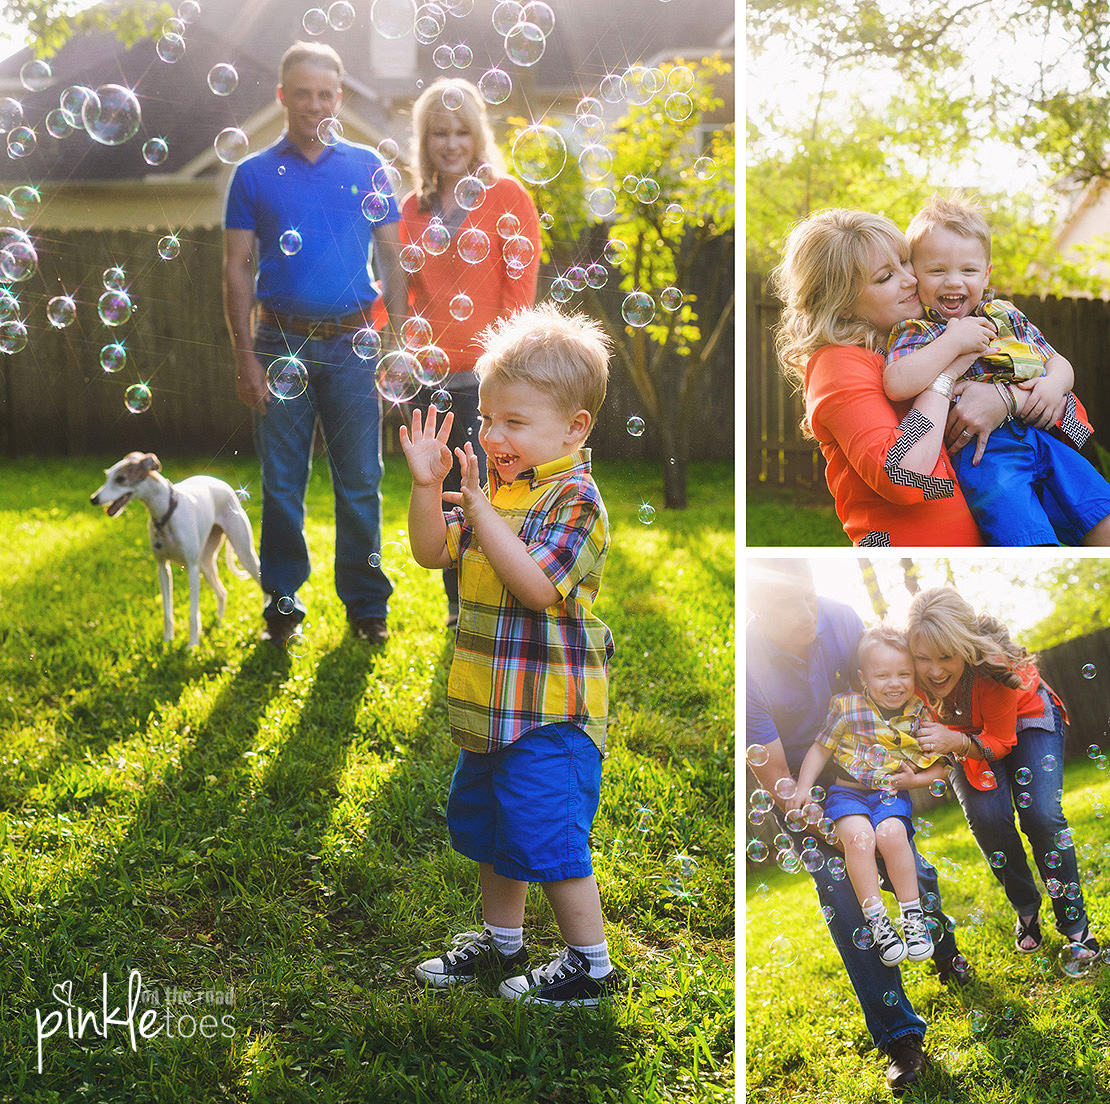 austin-lifestyle-candid-family-photography-toddler-kids-home-photographs-photographer-14